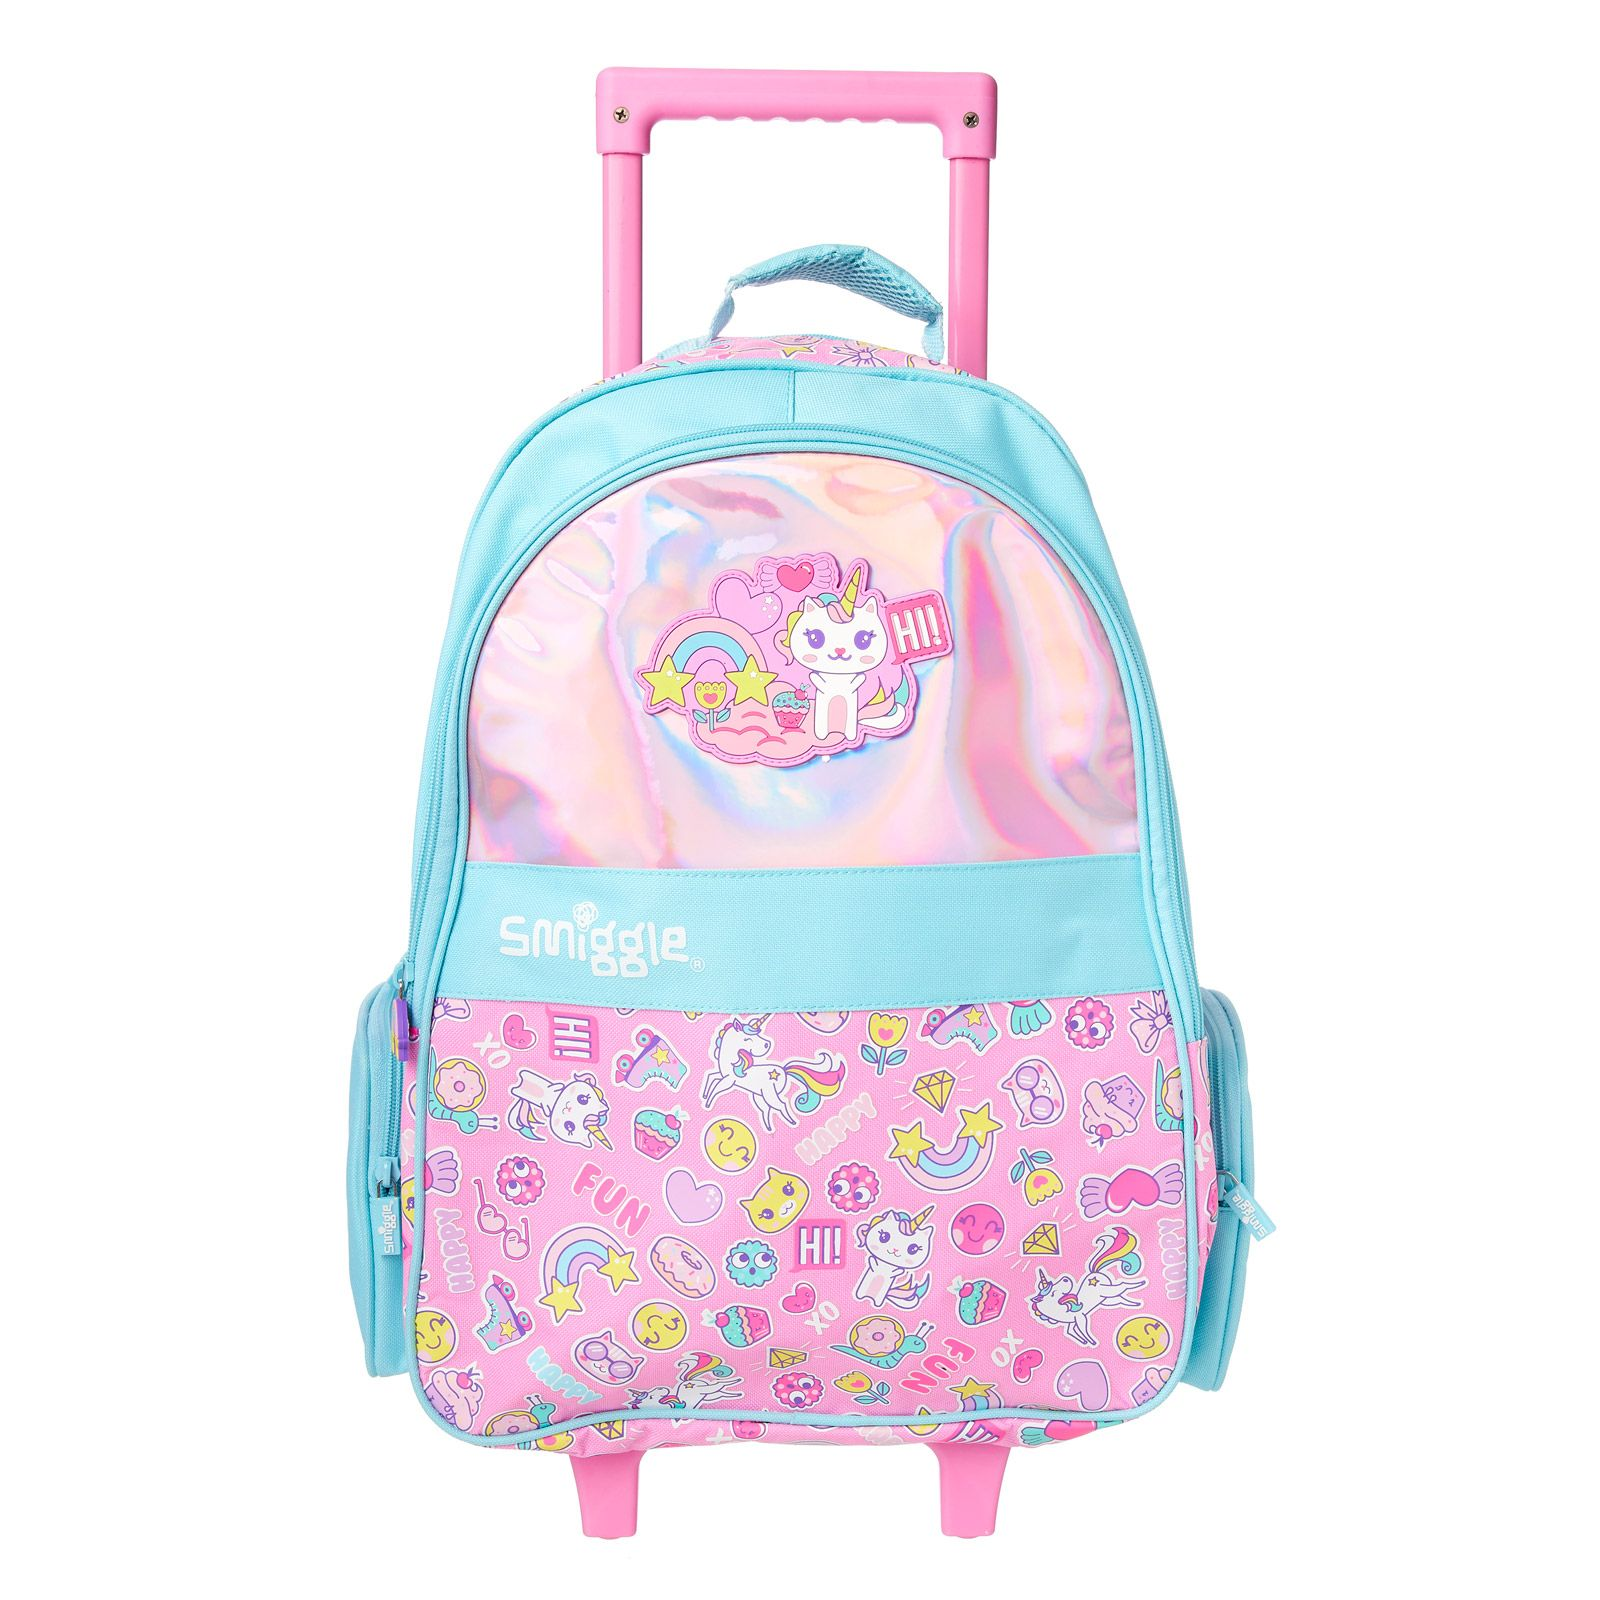 9bd6badfd8ac Chill Light Up Trolley Bag | Smiggle | Laila board | Night light ...